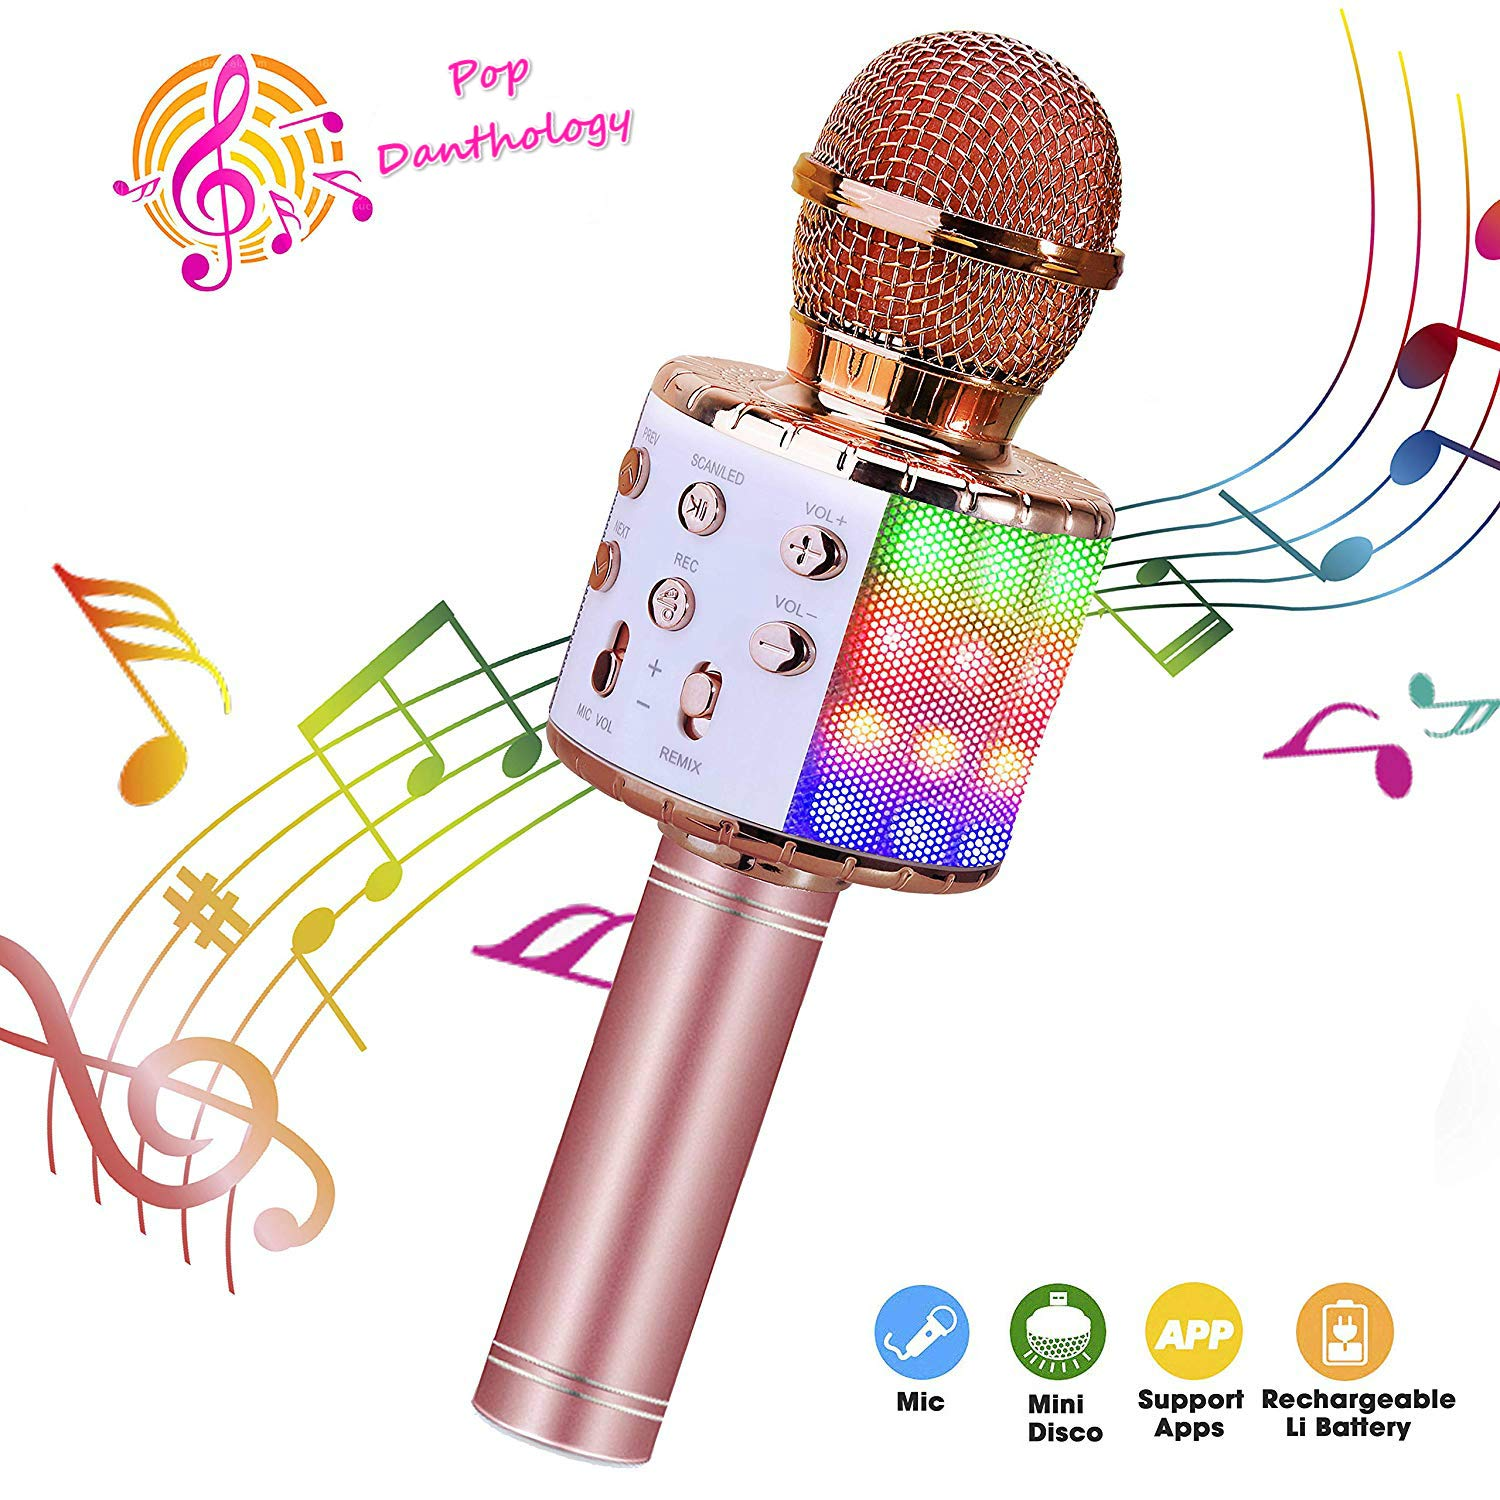 ShinePick Wireless 4 in 1 Bluetooth Karaoke Microphone, Handheld Portable Karaoke Machine, Home KTV Player with Record Function, Compatible with Android & iOS Devices(Pink) by ShinePick